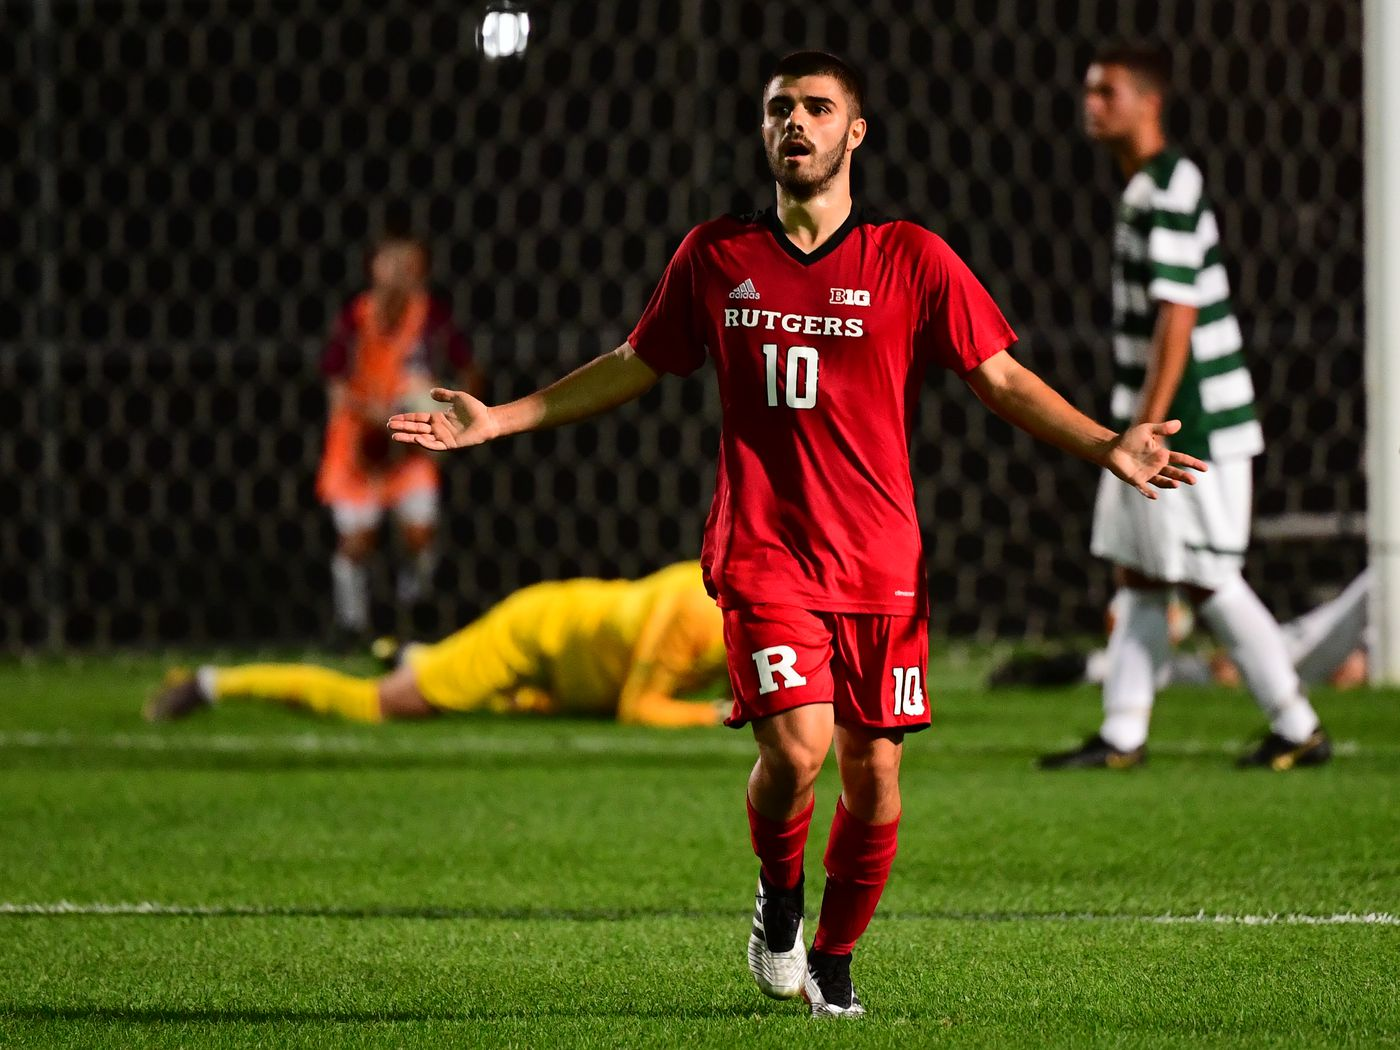 No. 22 Rutgers men's soccer remains unbeaten with 2-1 win over Saint Peter's